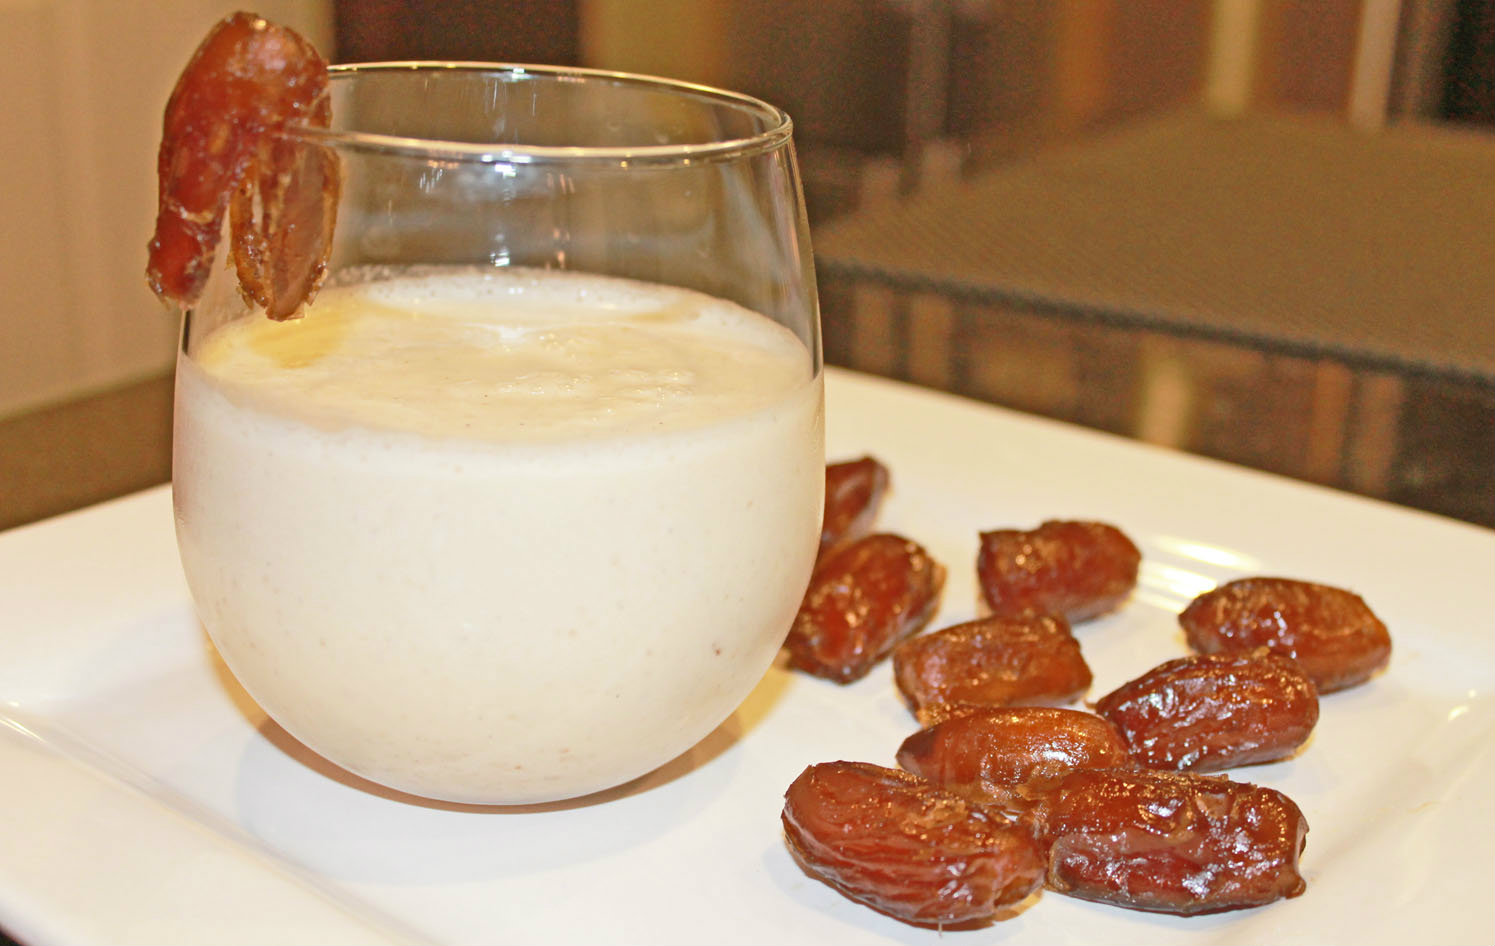 Date and Almond Milk Smoothie